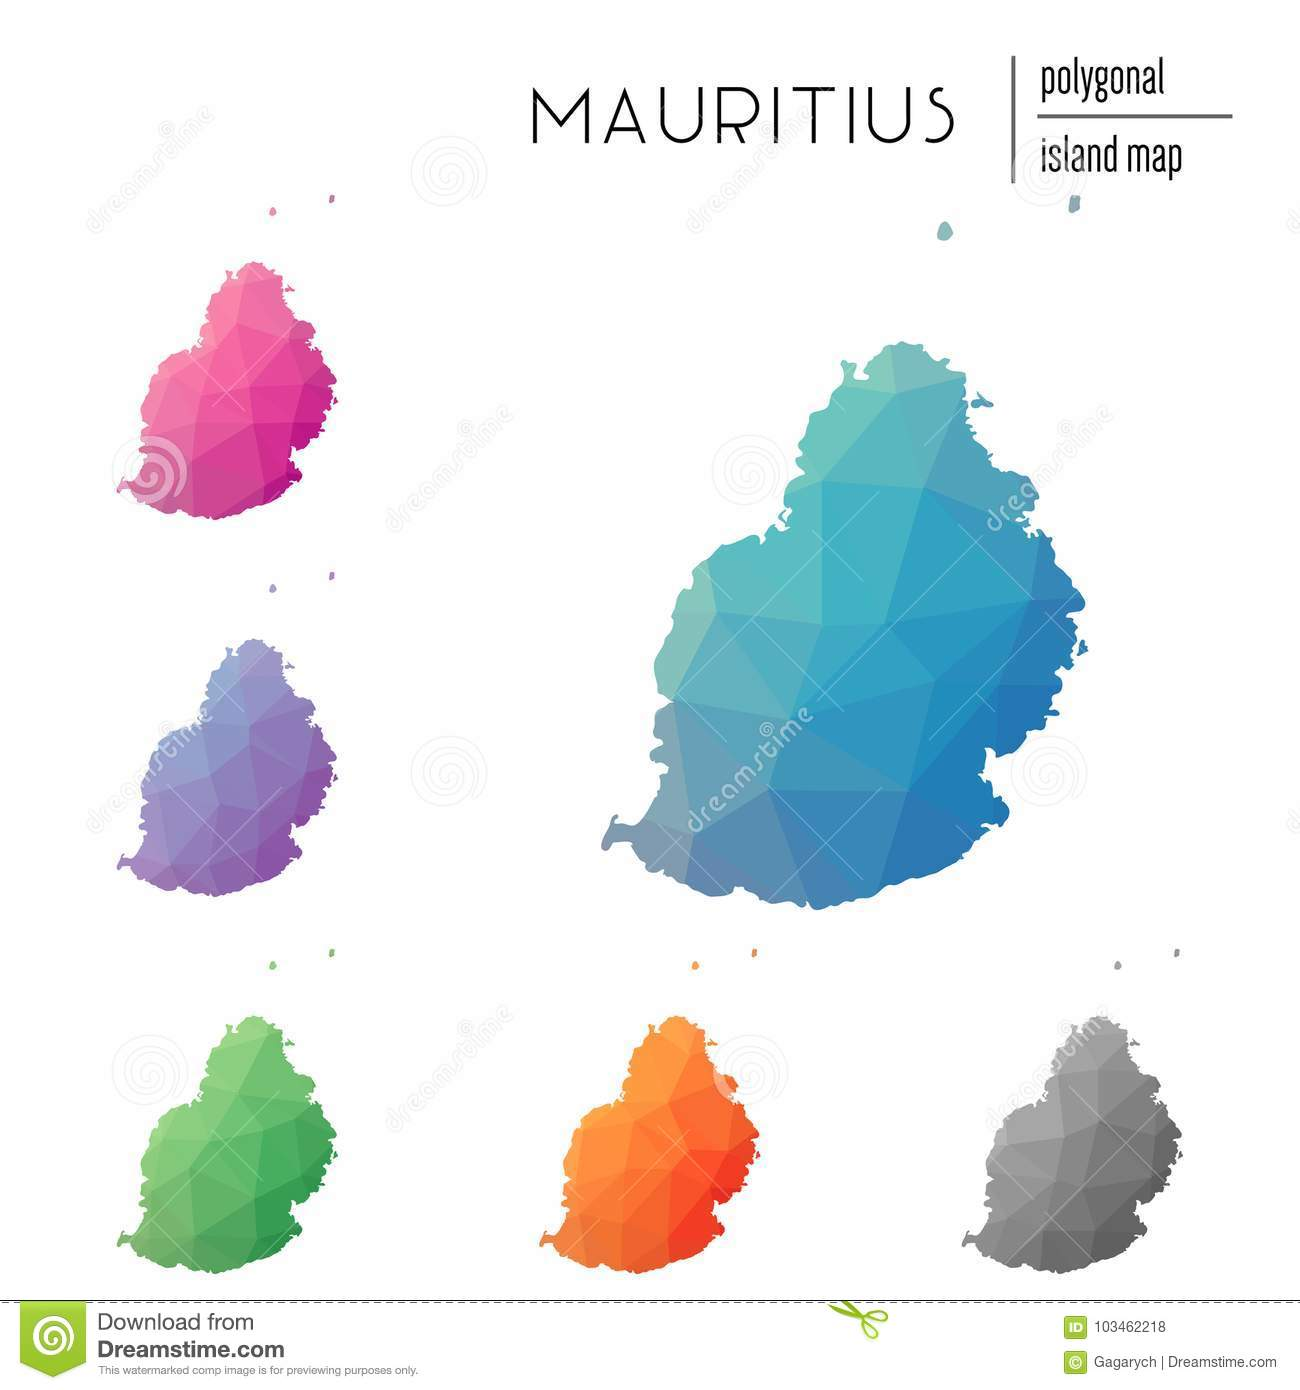 Mauritius Island Africa Map.Set Of Vector Polygonal Mauritius Maps Filled Stock Vector